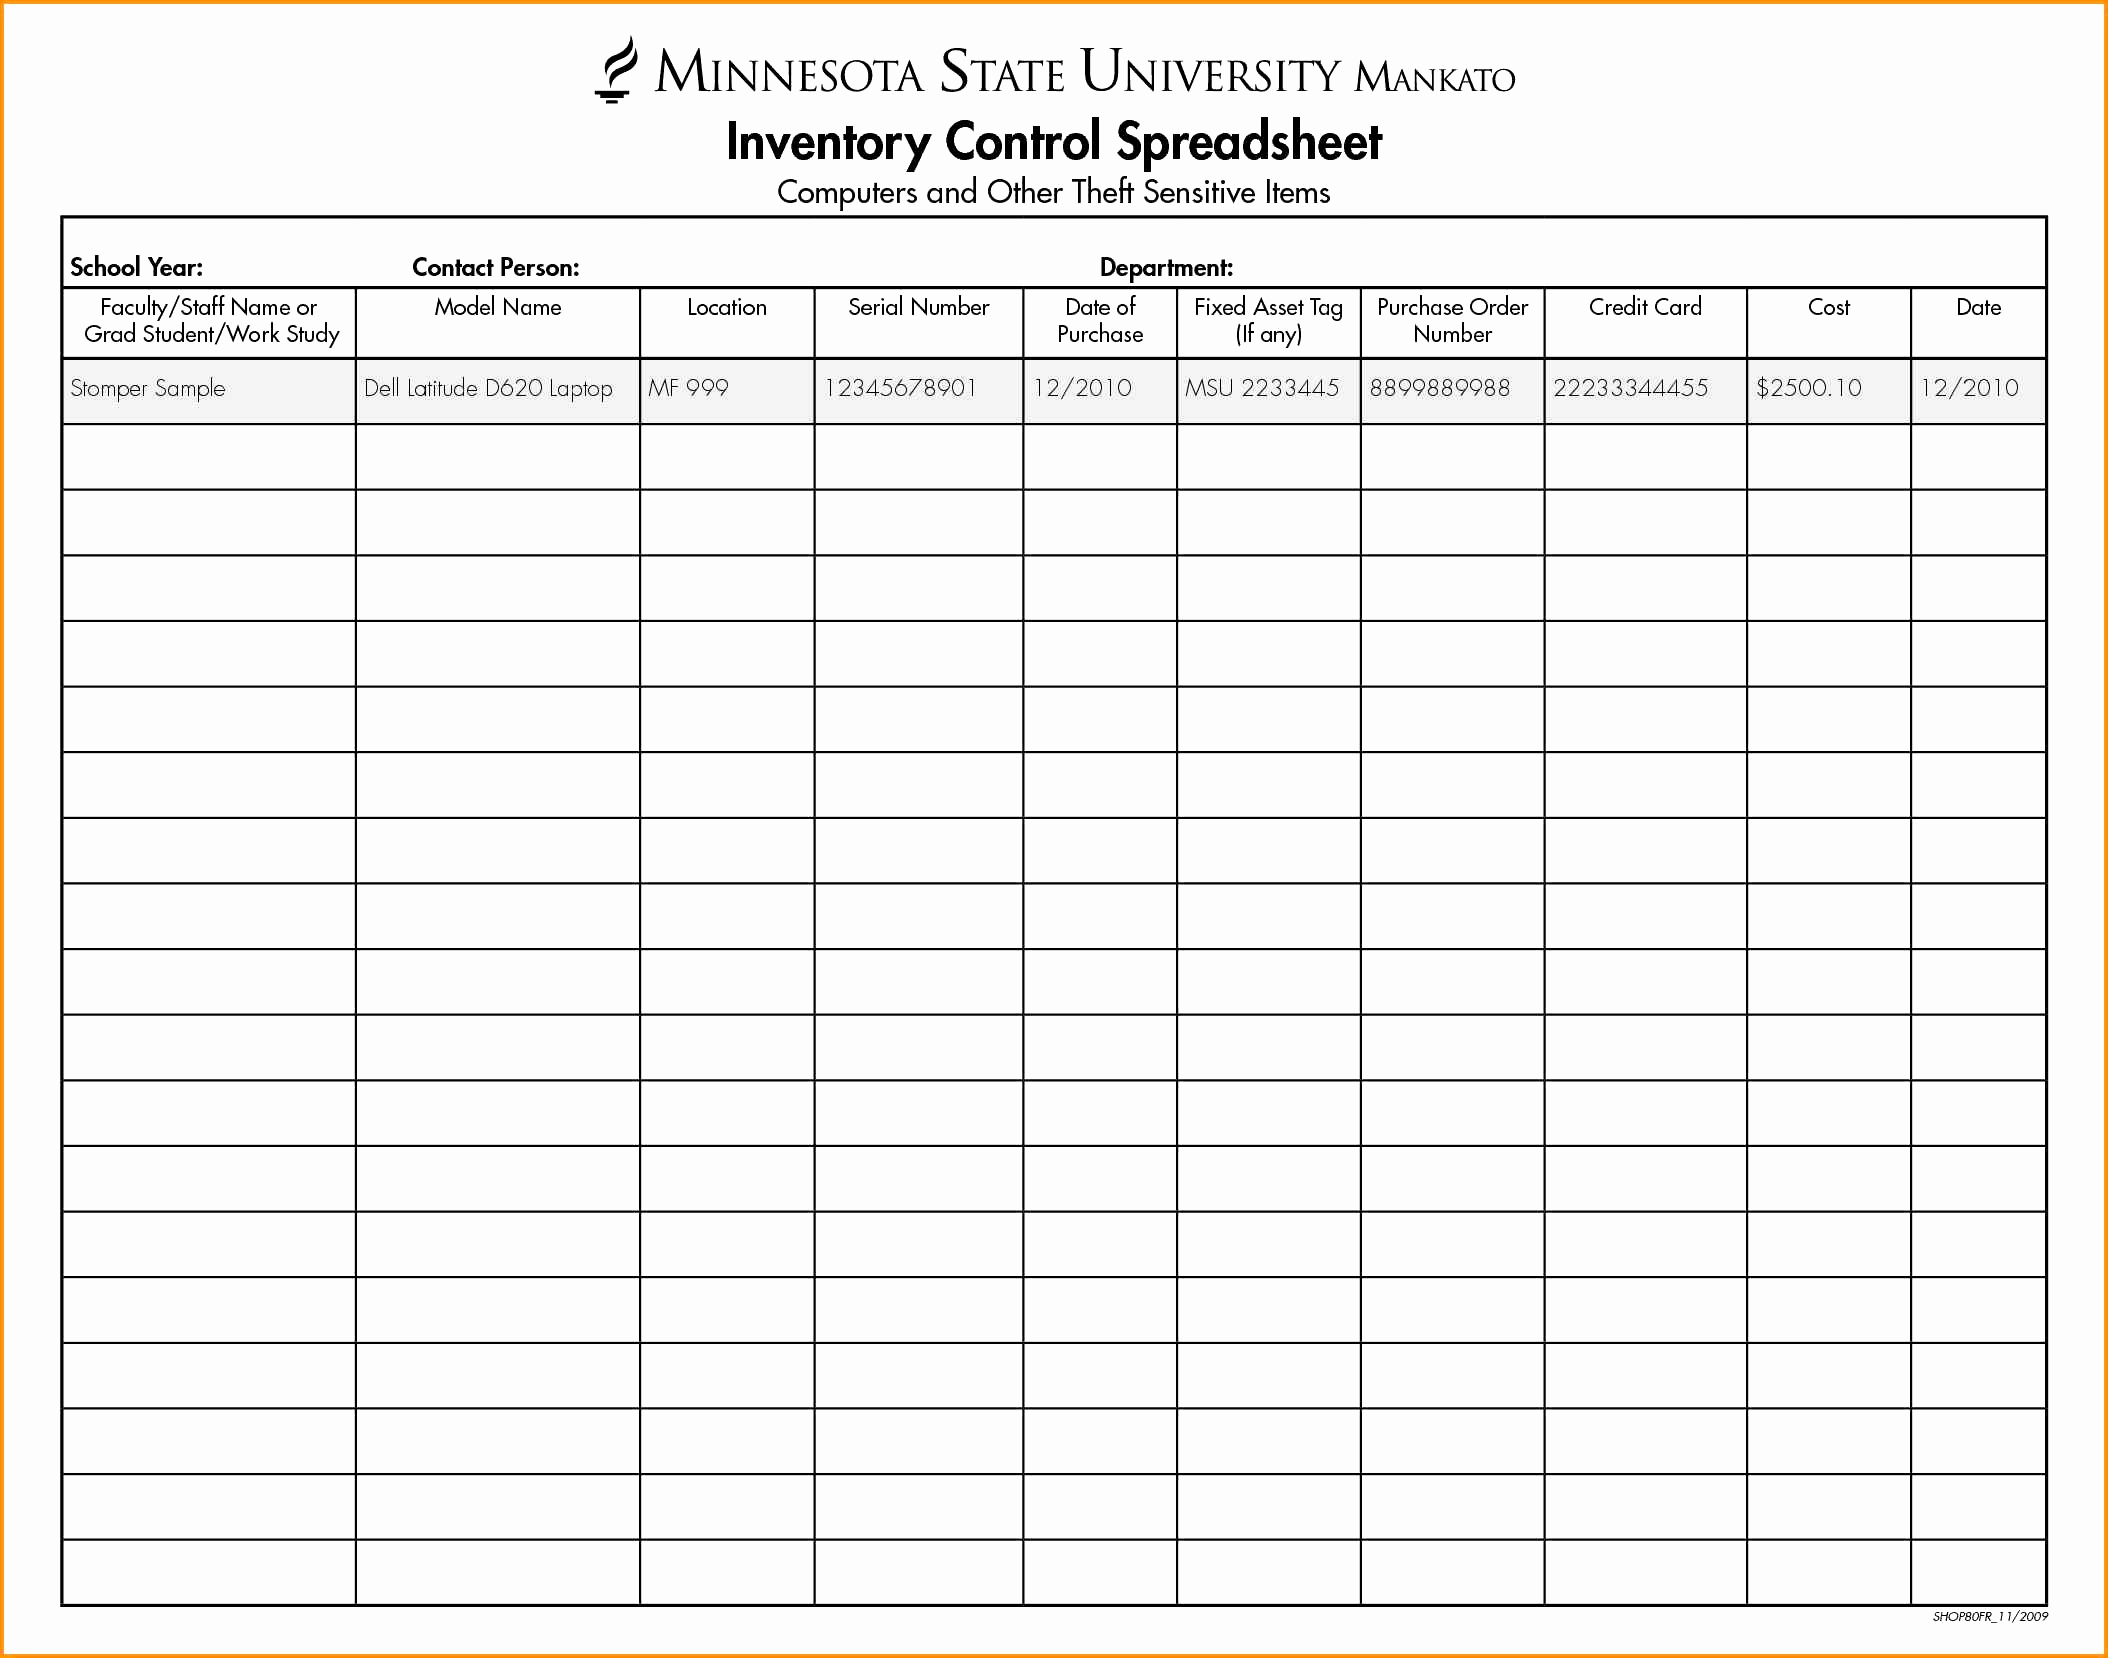 Cattle Inventory Spreadsheet Template Regarding Cattle Inventory Spreadsheet Template  Bardwellparkphysiotherapy